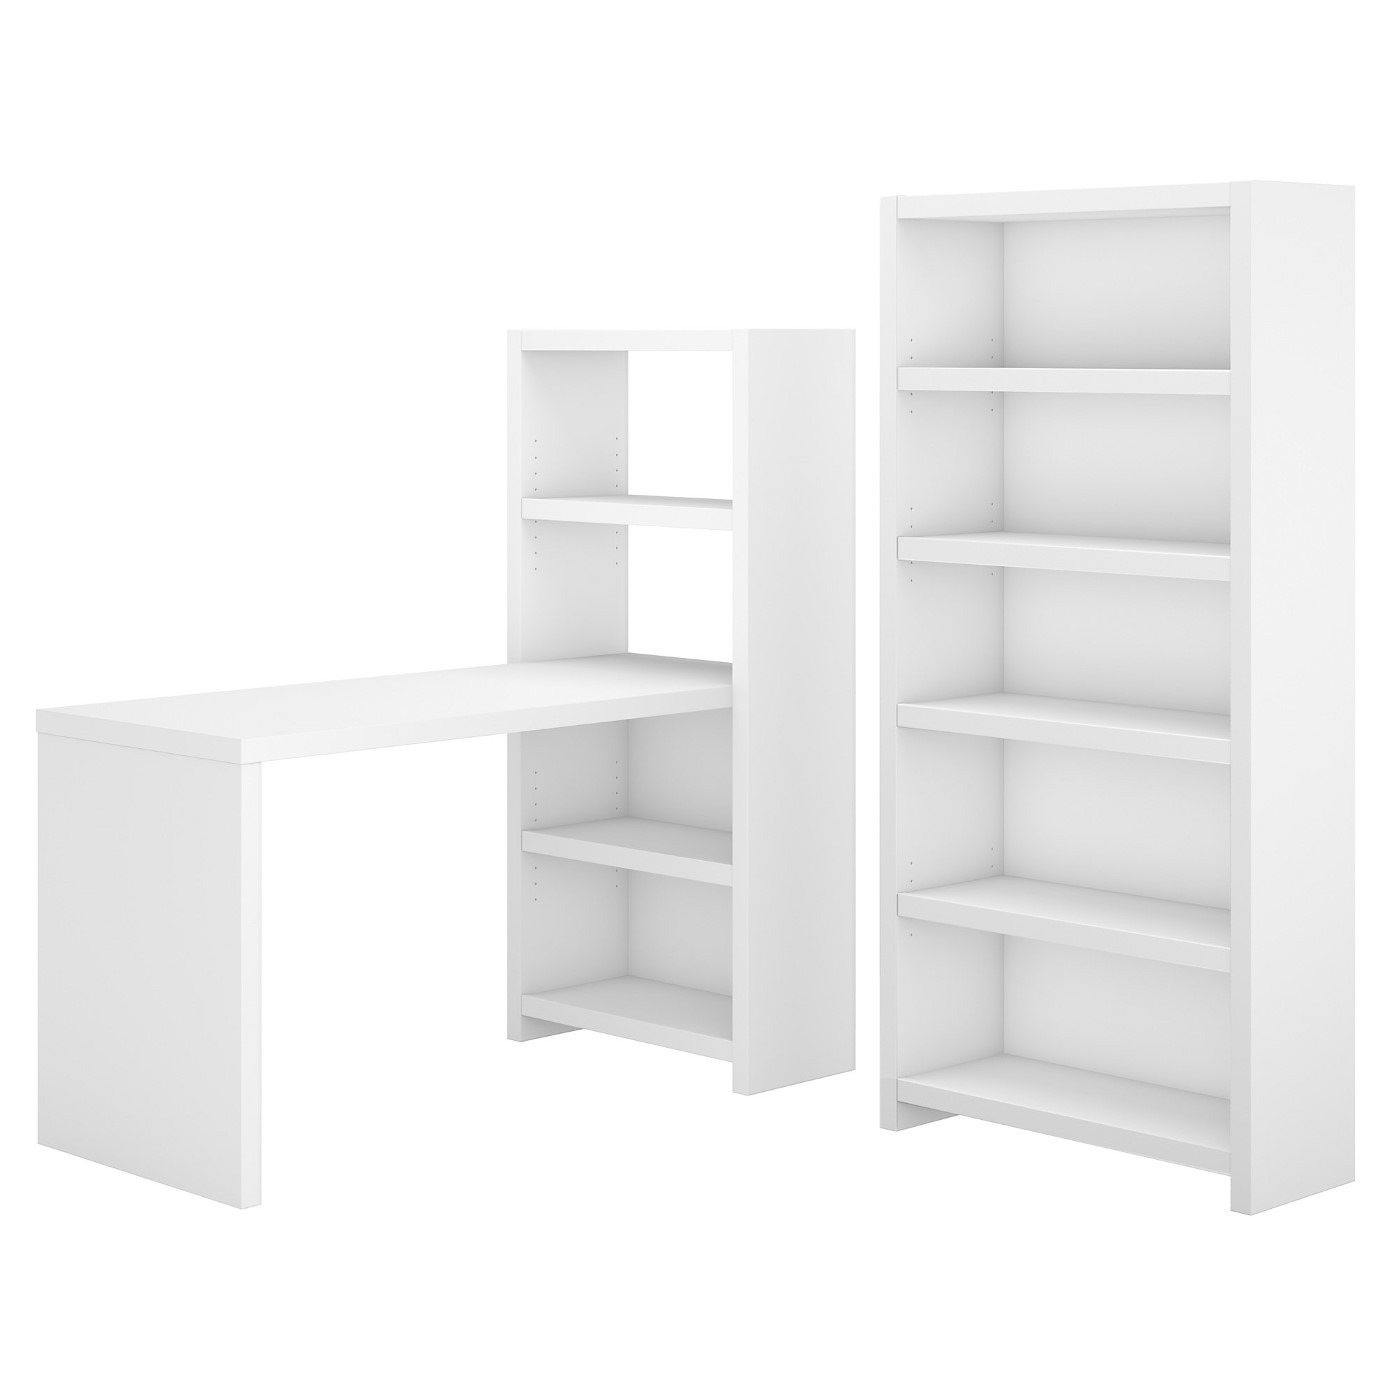 OFFICE BY KATHY IRELAND� ECHO BOOKCASE DESK WITH STORAGE. FREE SHIPPING